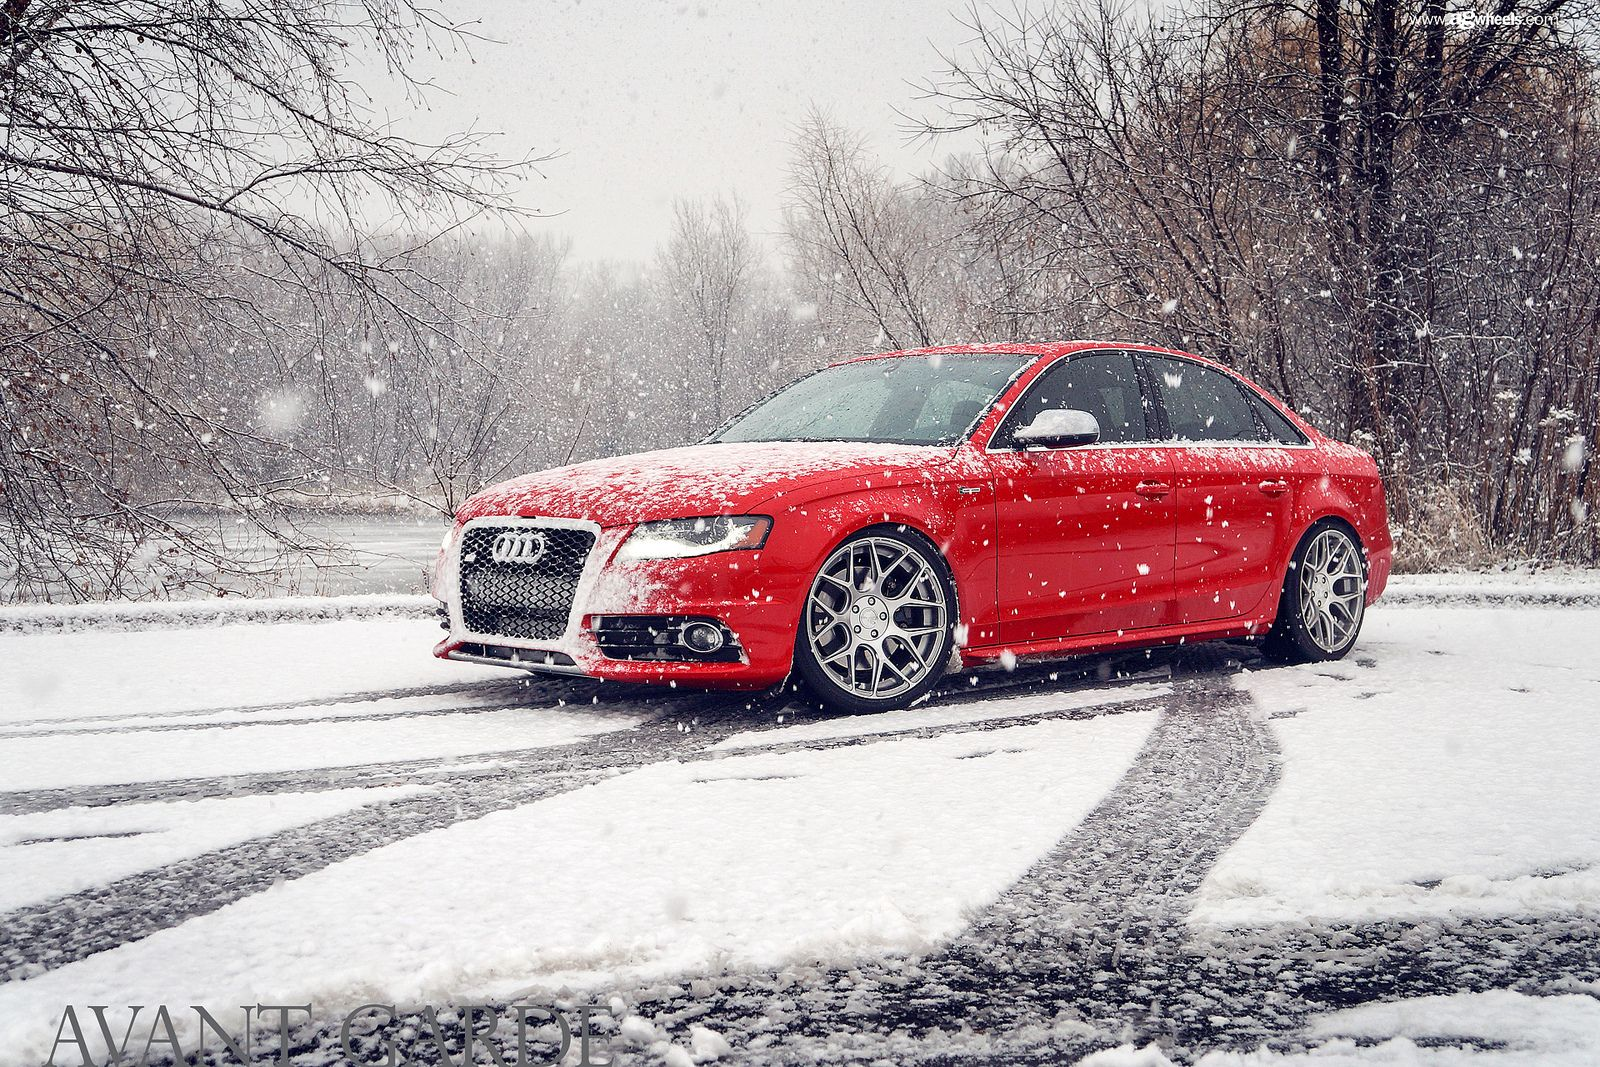 Audi Playing In The Snow Gyw Has Wheels And Tires Perfect For Snow Use Check Our Our Avant Garde Wheel Selection Online At Getyour Audi S4 Audi Audi Wheels